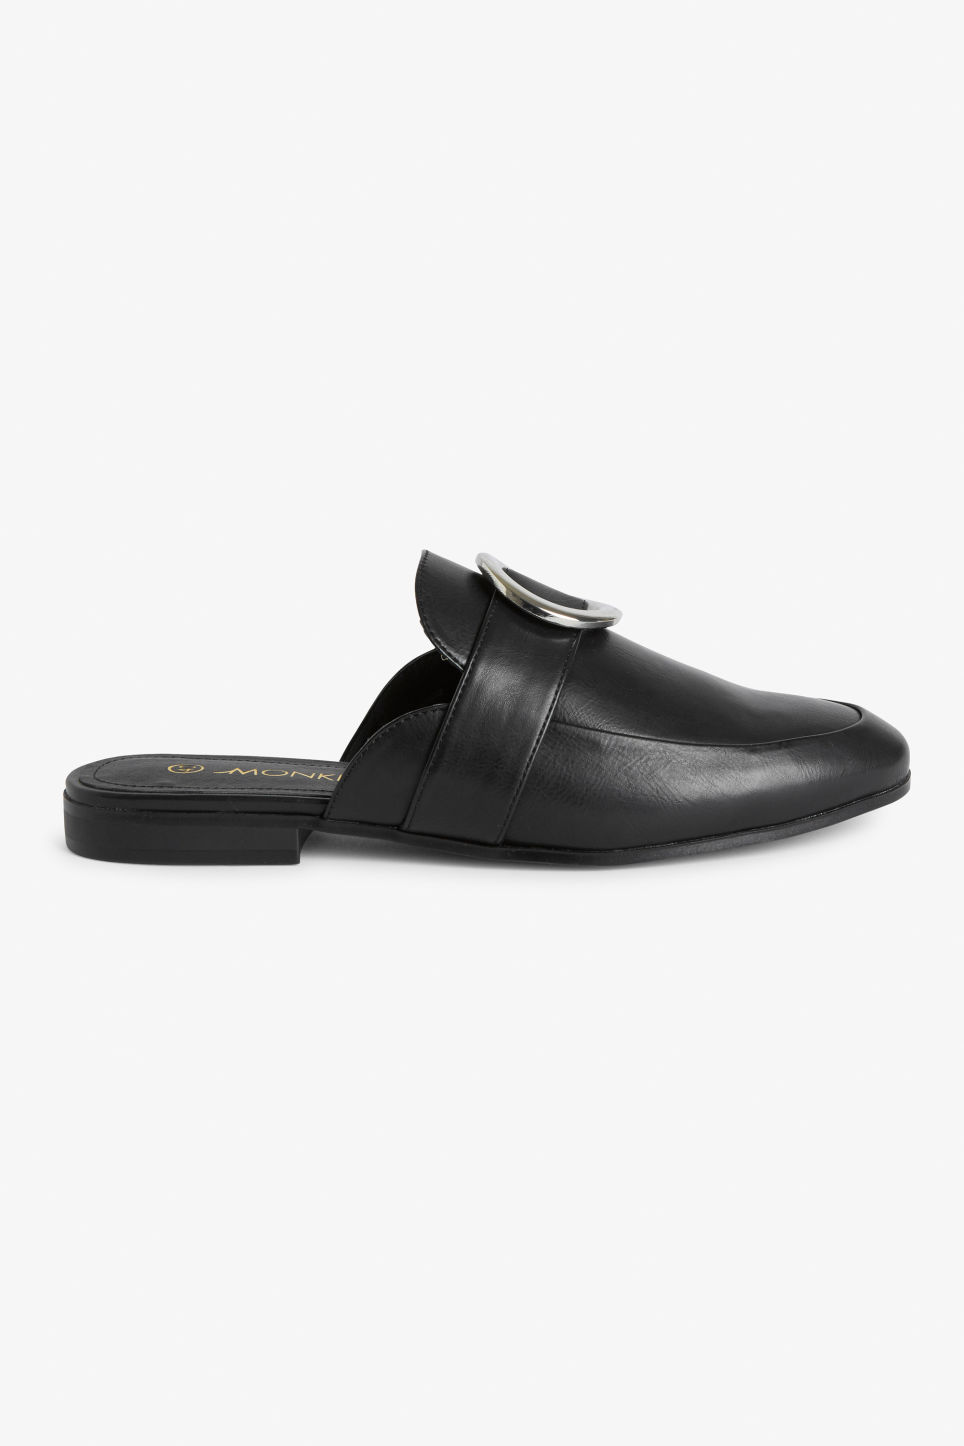 Detailed image of Monki loafer mules in black